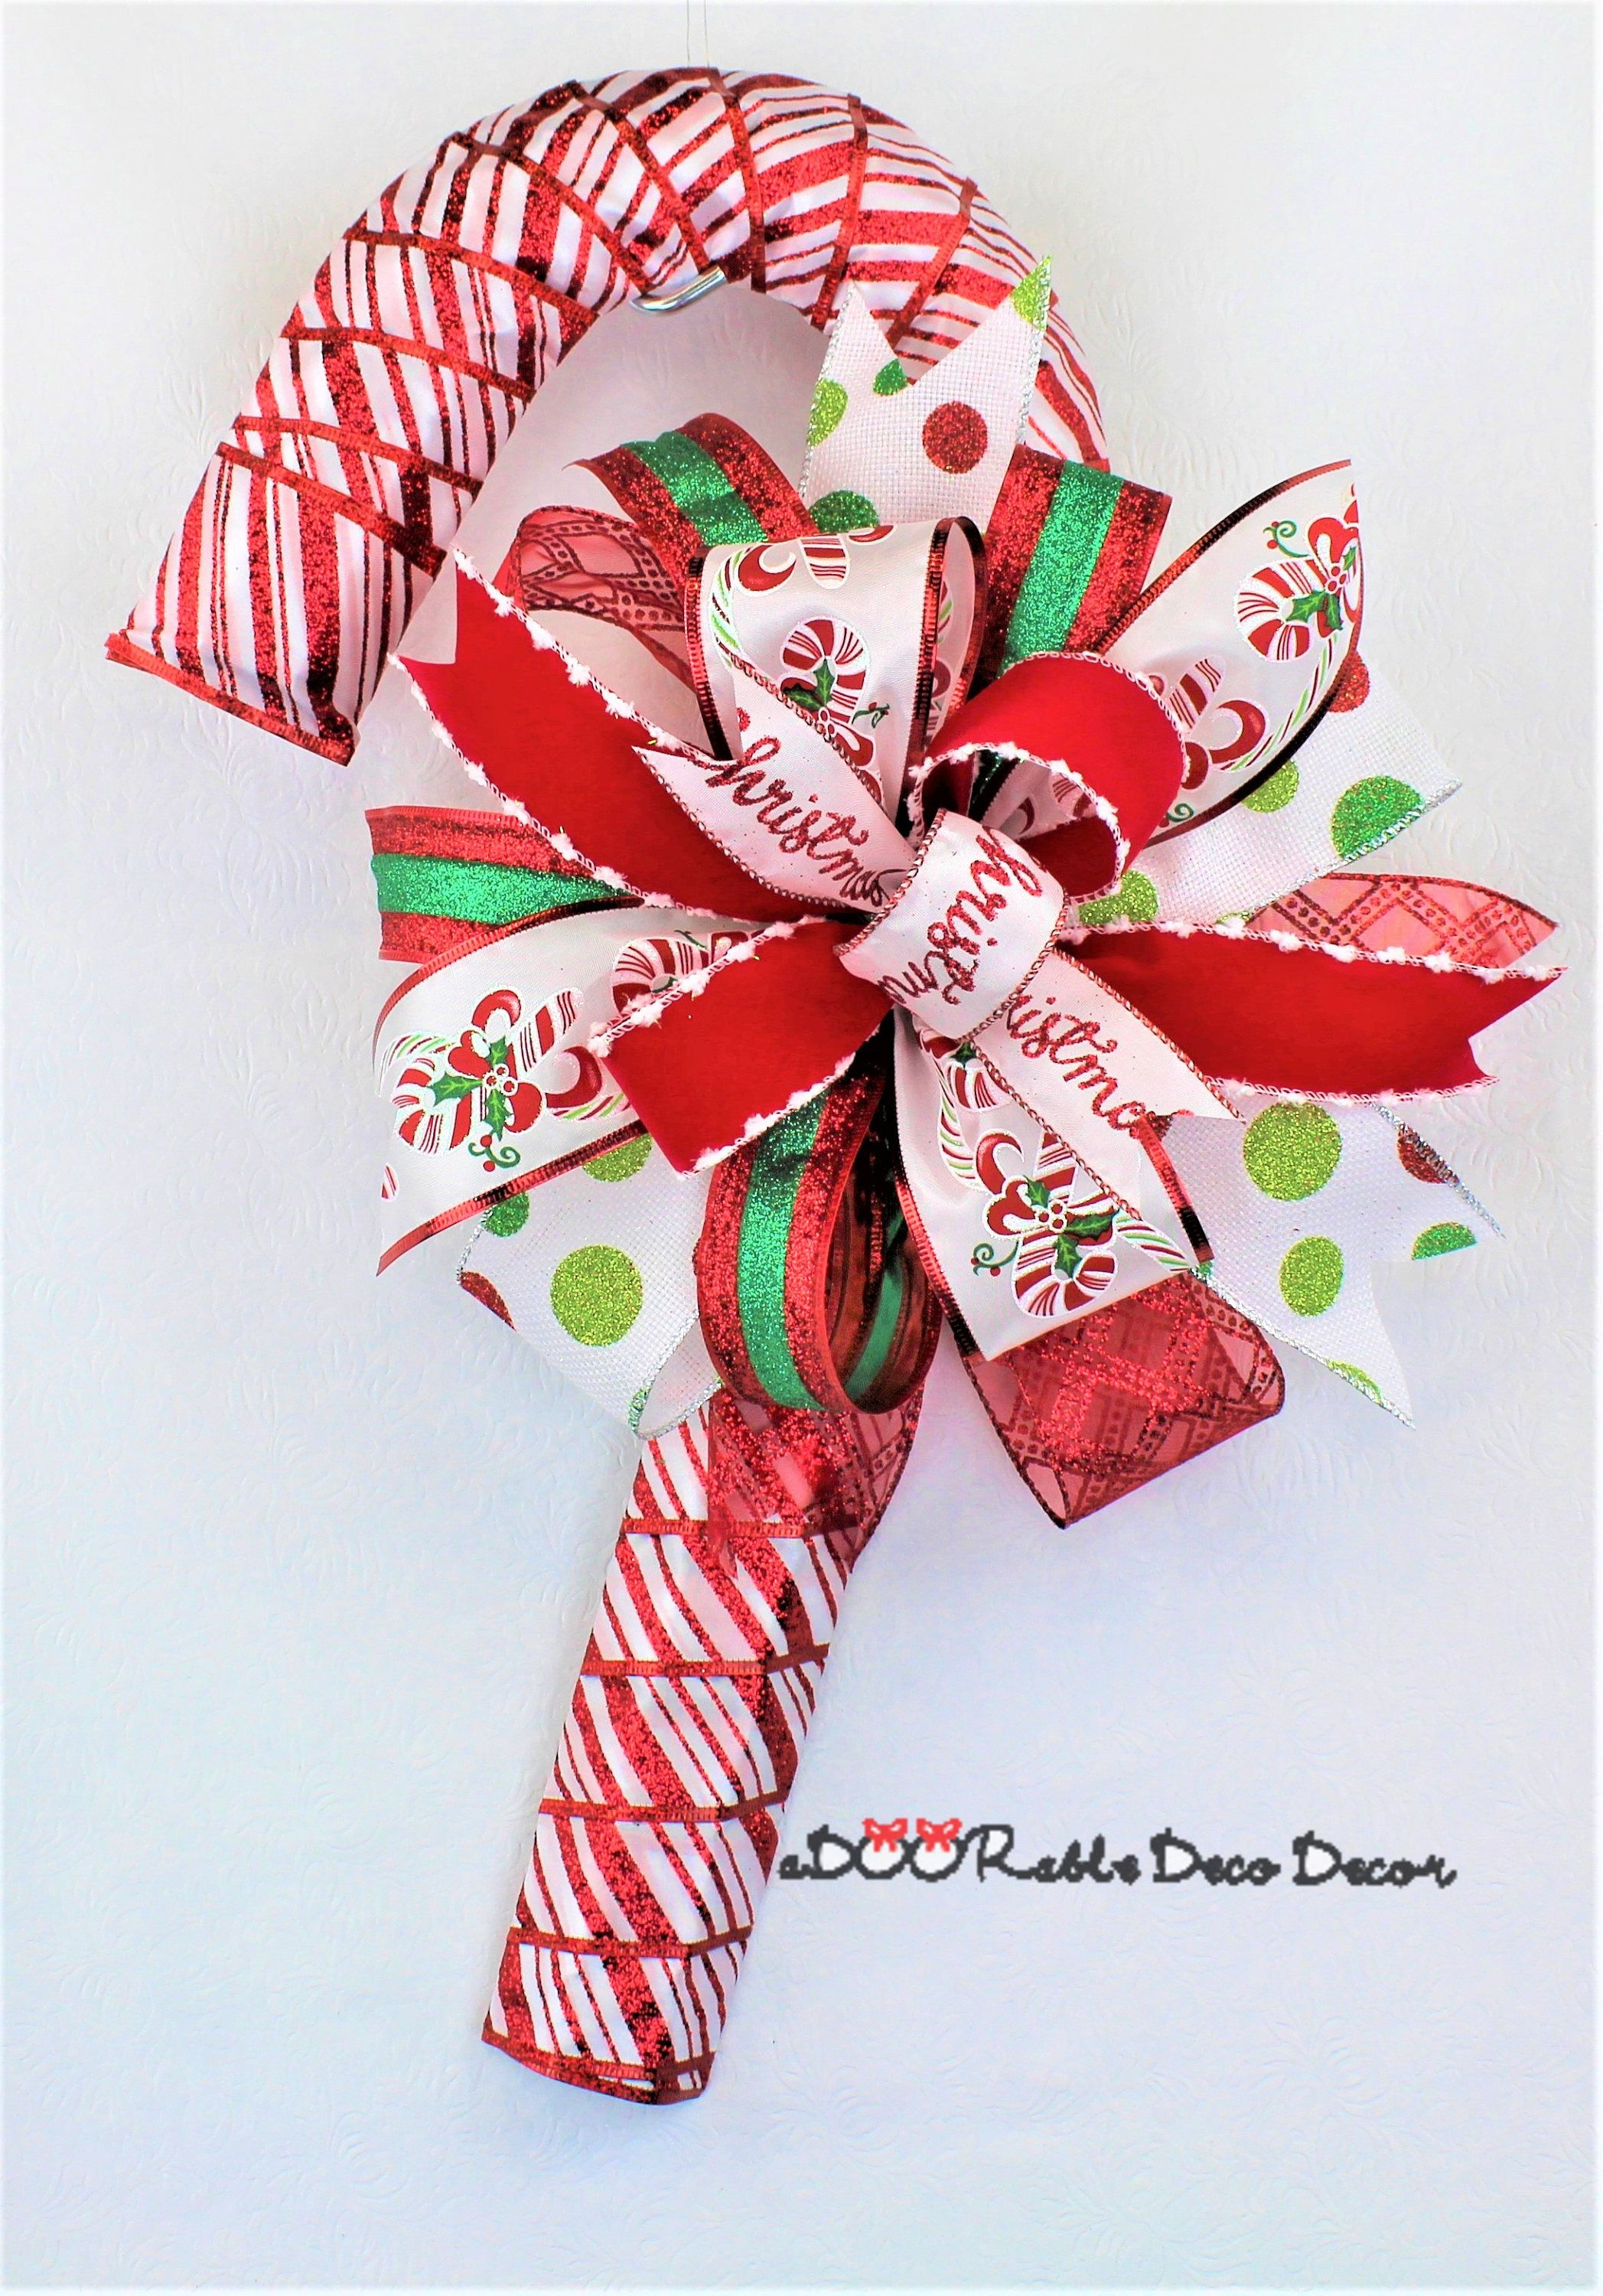 Christmas Decorations Candy Canes Candy Cane Christmas Wreath Candy Cane Wreath Candy Cane Door